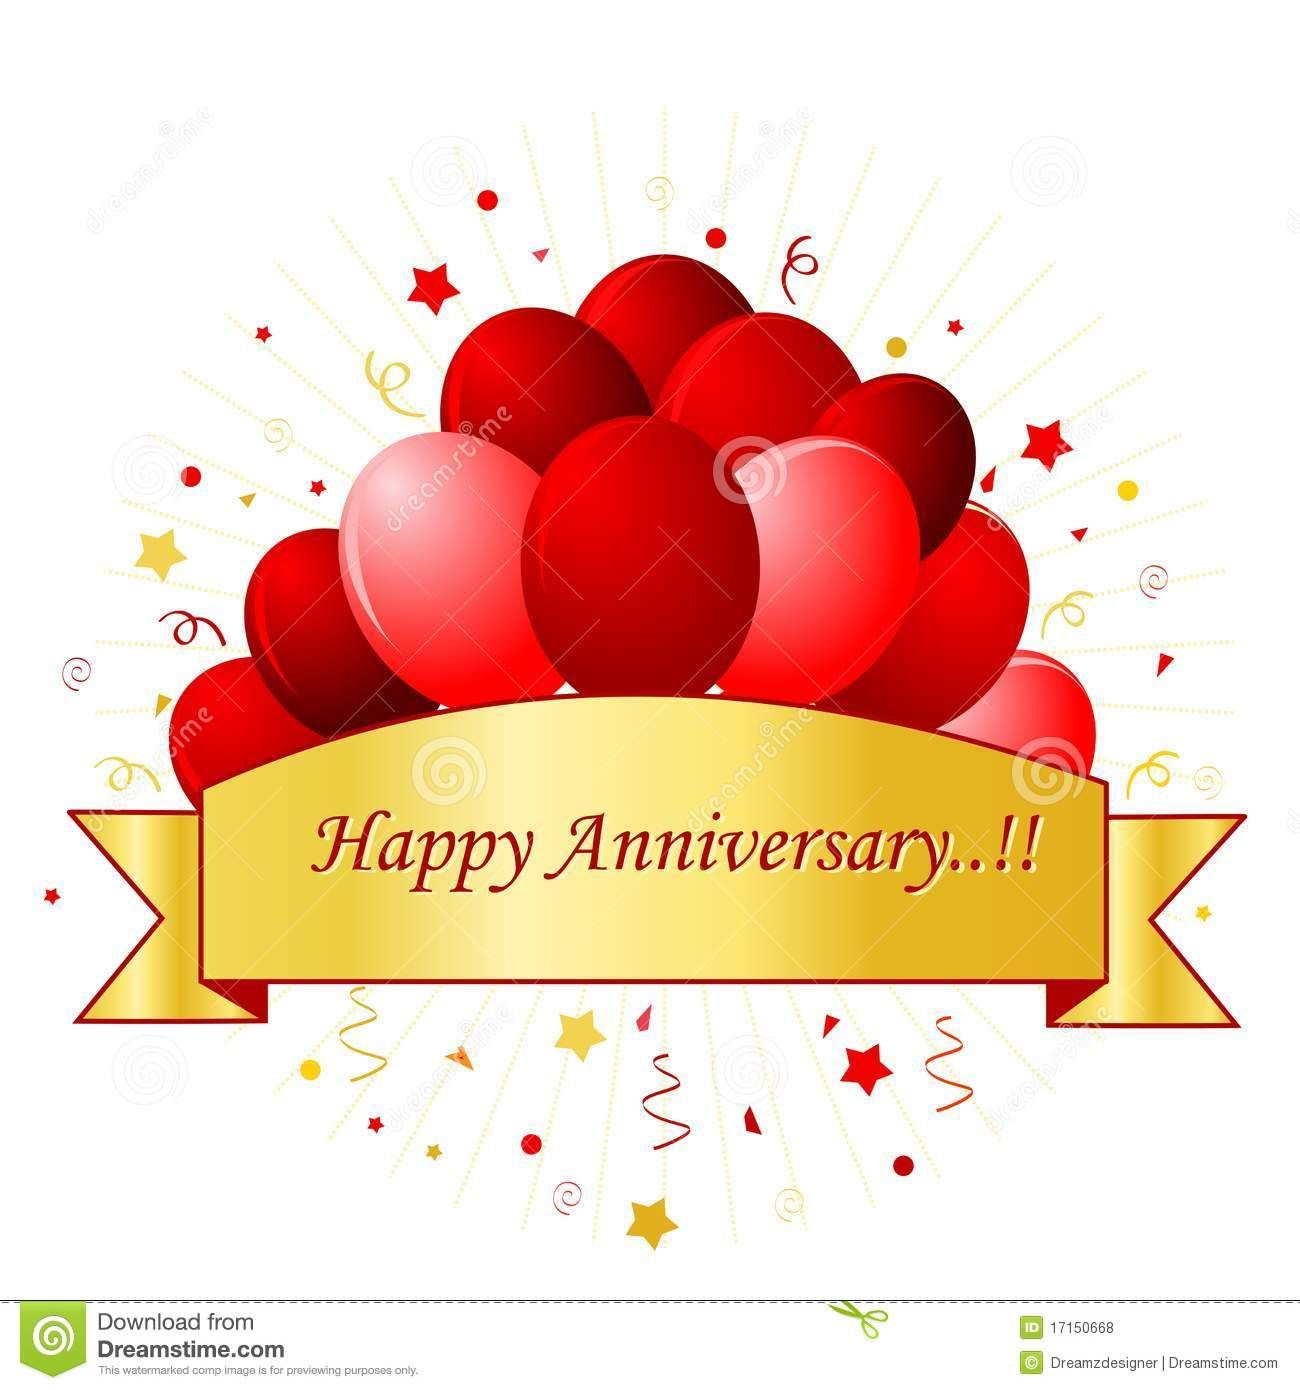 happy anniversary card in red letters with beautiful red